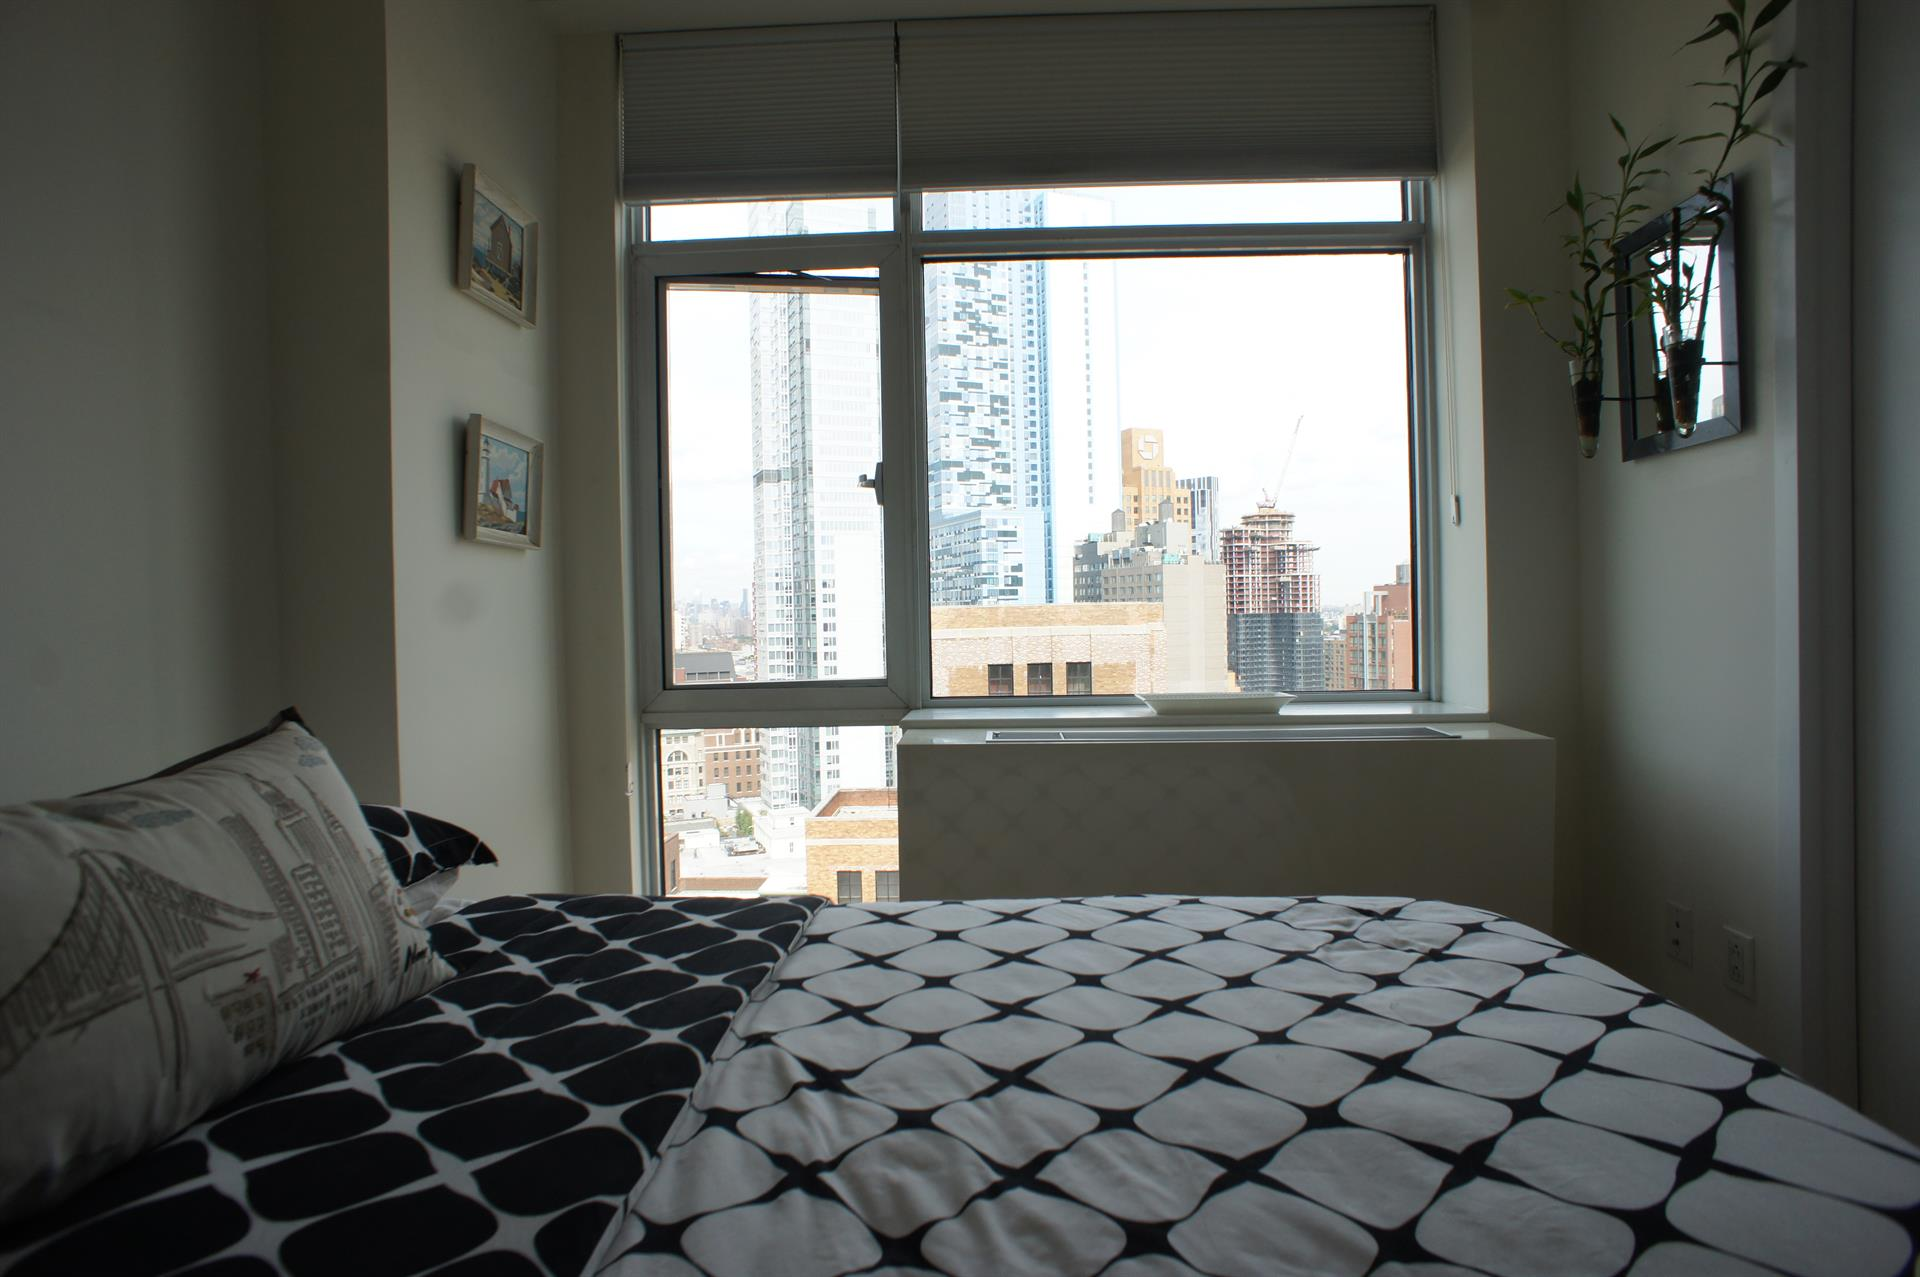 Additional photo for property listing at 189 Schermerhorn St 23g  Brooklyn, New York 11201 United States